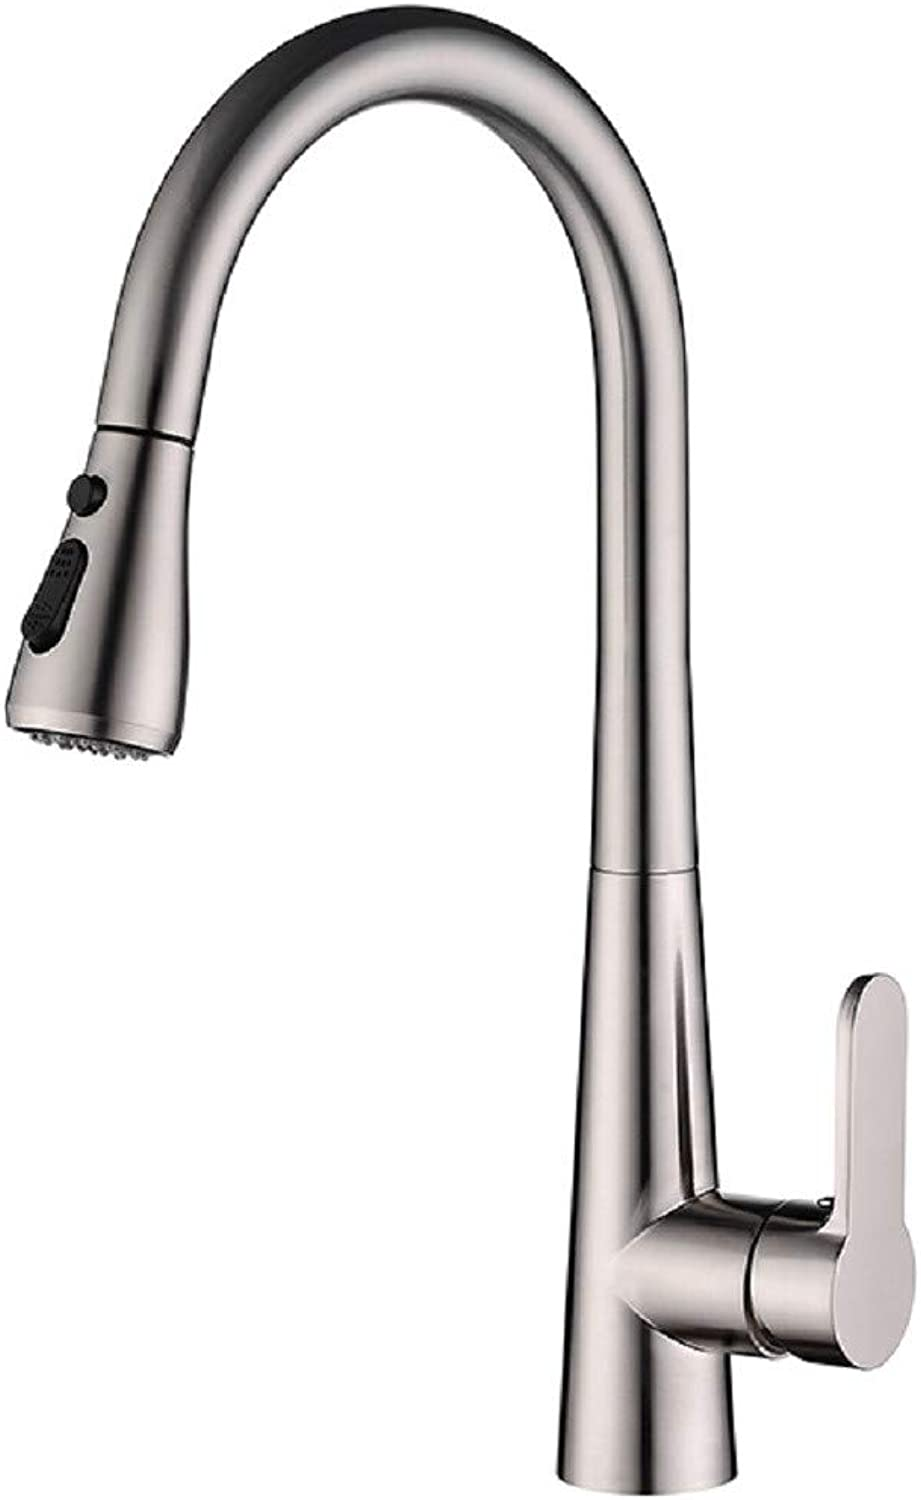 Kitchen Tap Pull-Out Kitchen Hot and Cold redary Tank Wash Vegetable Basin Telescopic Tap Kitchen Taps Kitchen Sink Mixer Taps Basin Tap